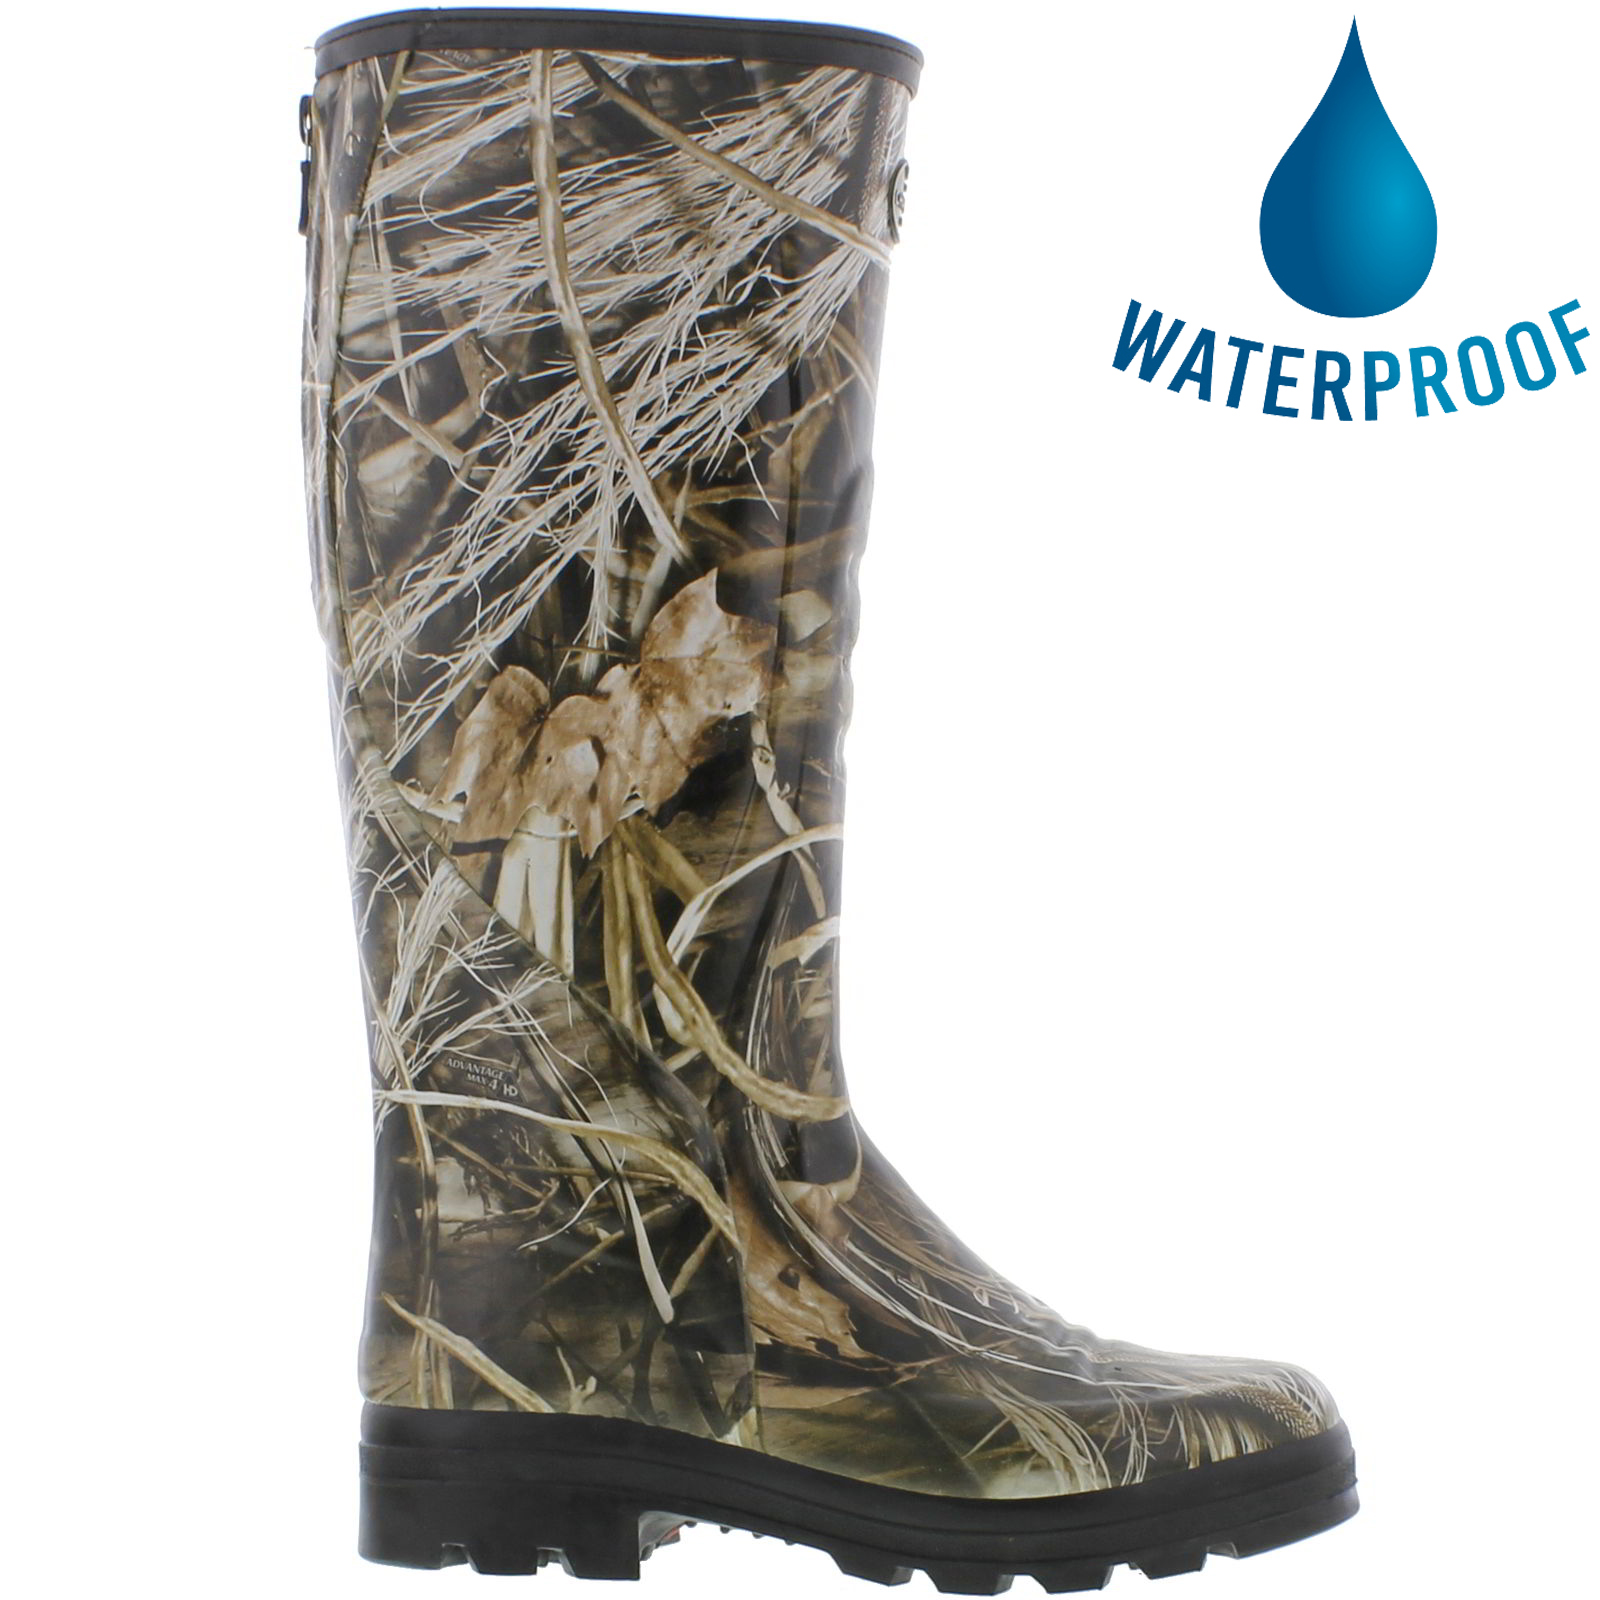 Details about Le Chameau Traqueur Camo Mens Hunting Zip Up Wellies Wellington Boots Size 8 12